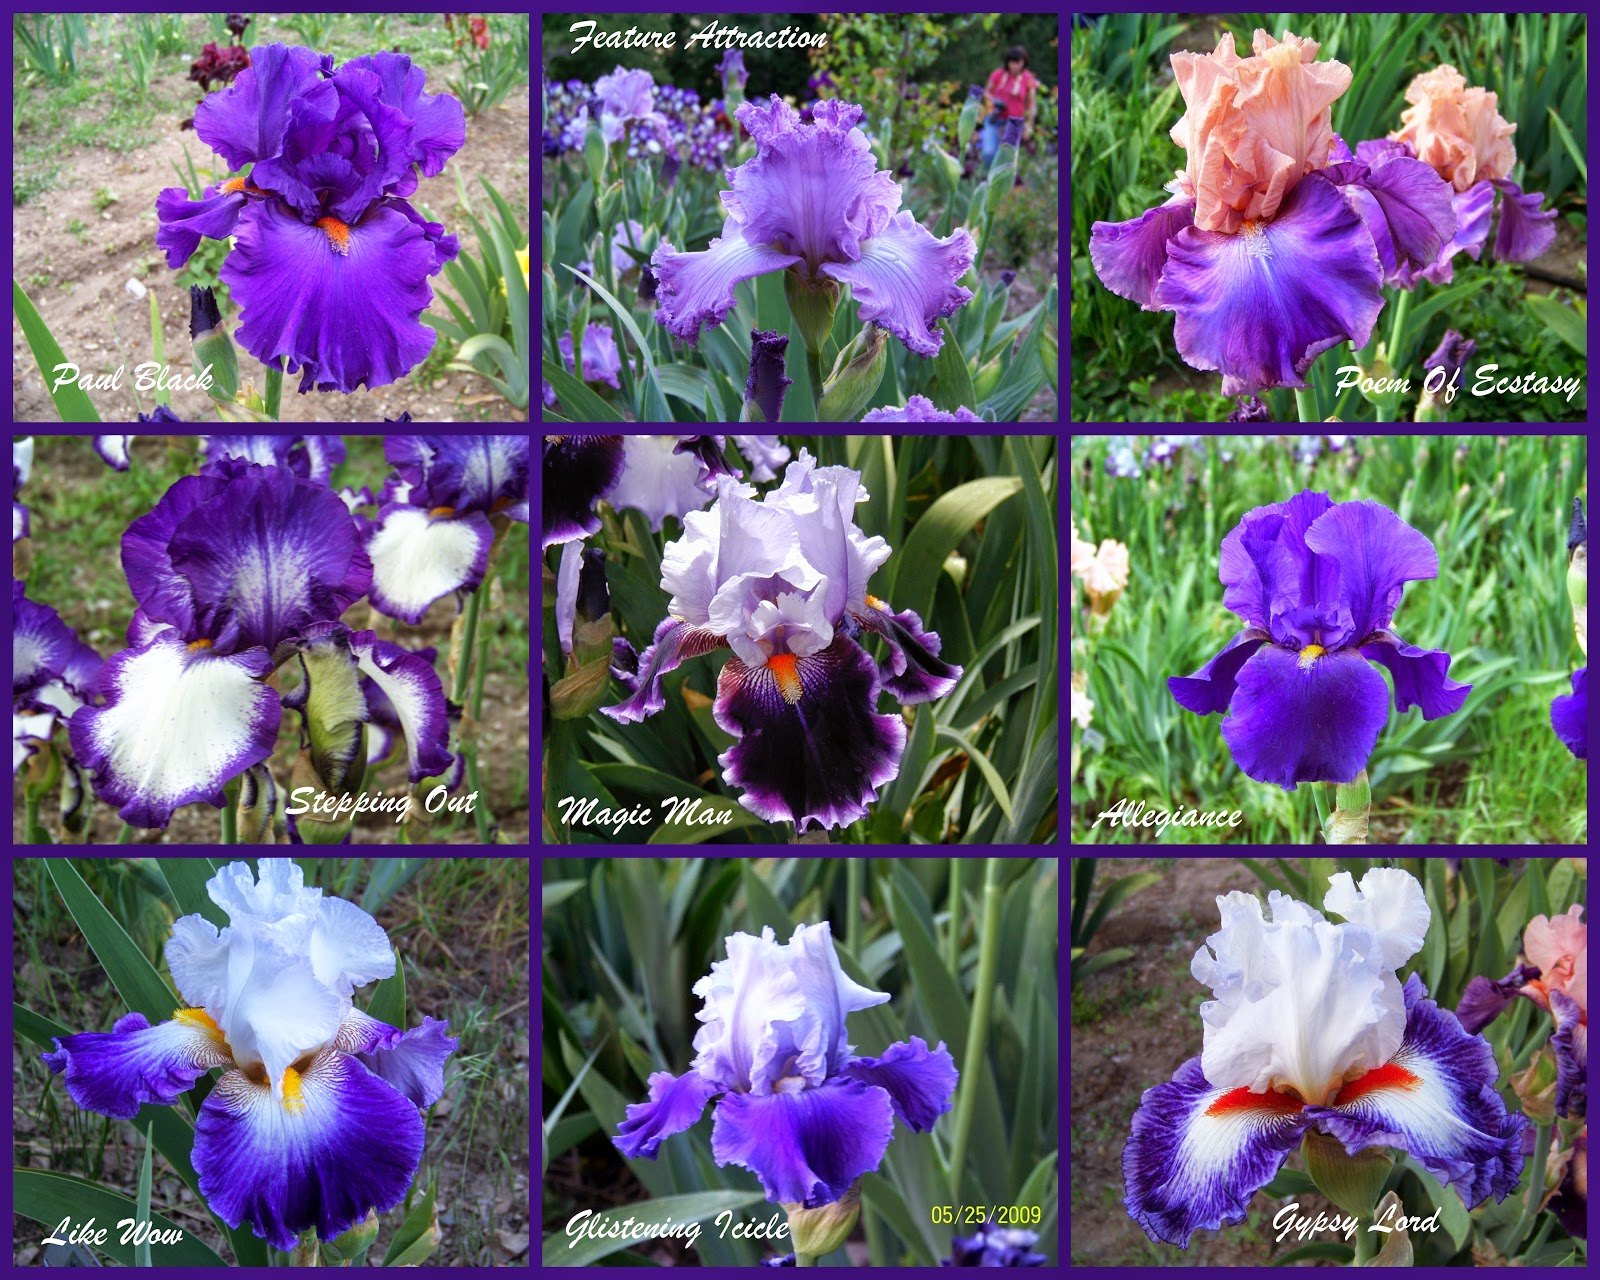 World of irises tall bearded iris my favorite purples part one feature attraction schreiner 1994 winner of the 1994 presidents cup at the american iris society national convention in portland oregon izmirmasajfo Image collections